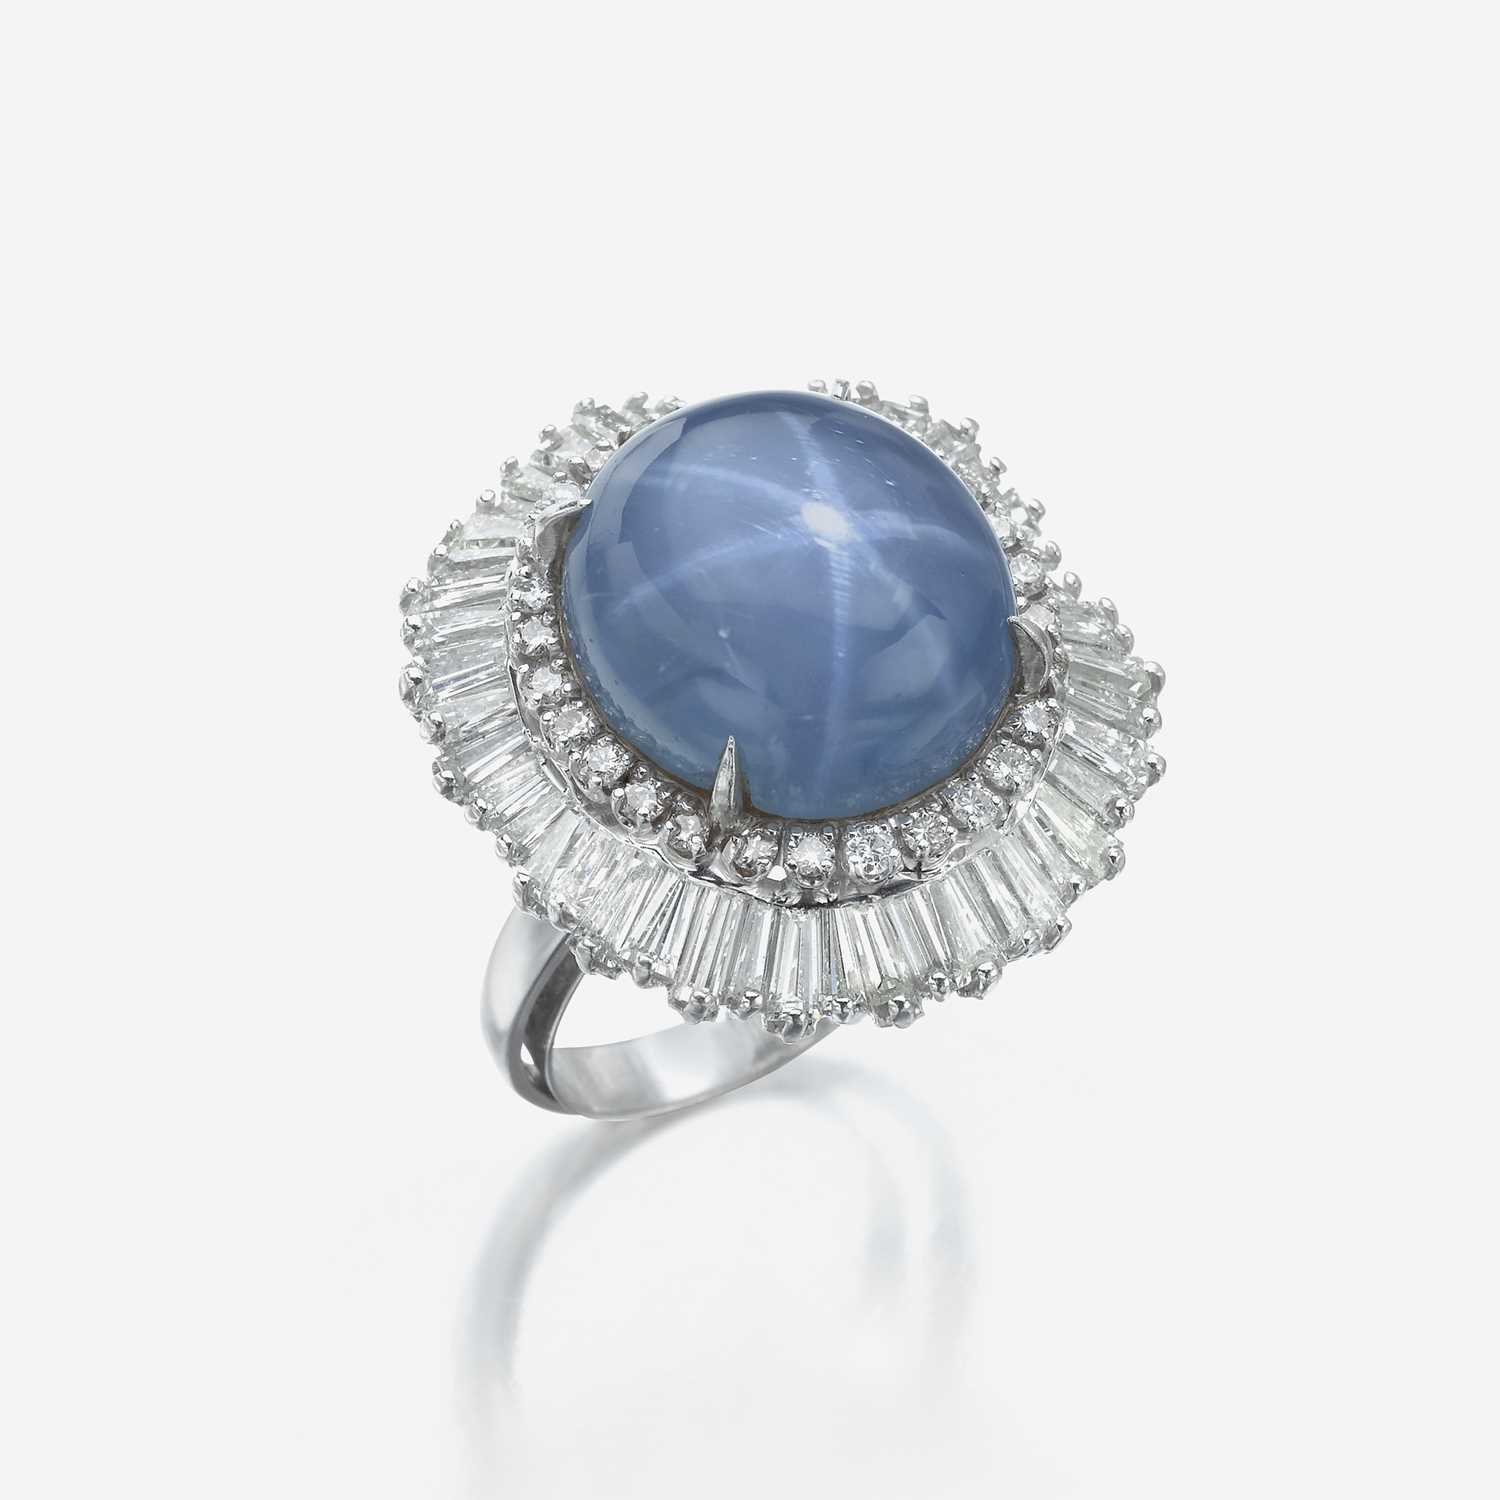 Lot 84 - A star sapphire, diamond, and platinum ring